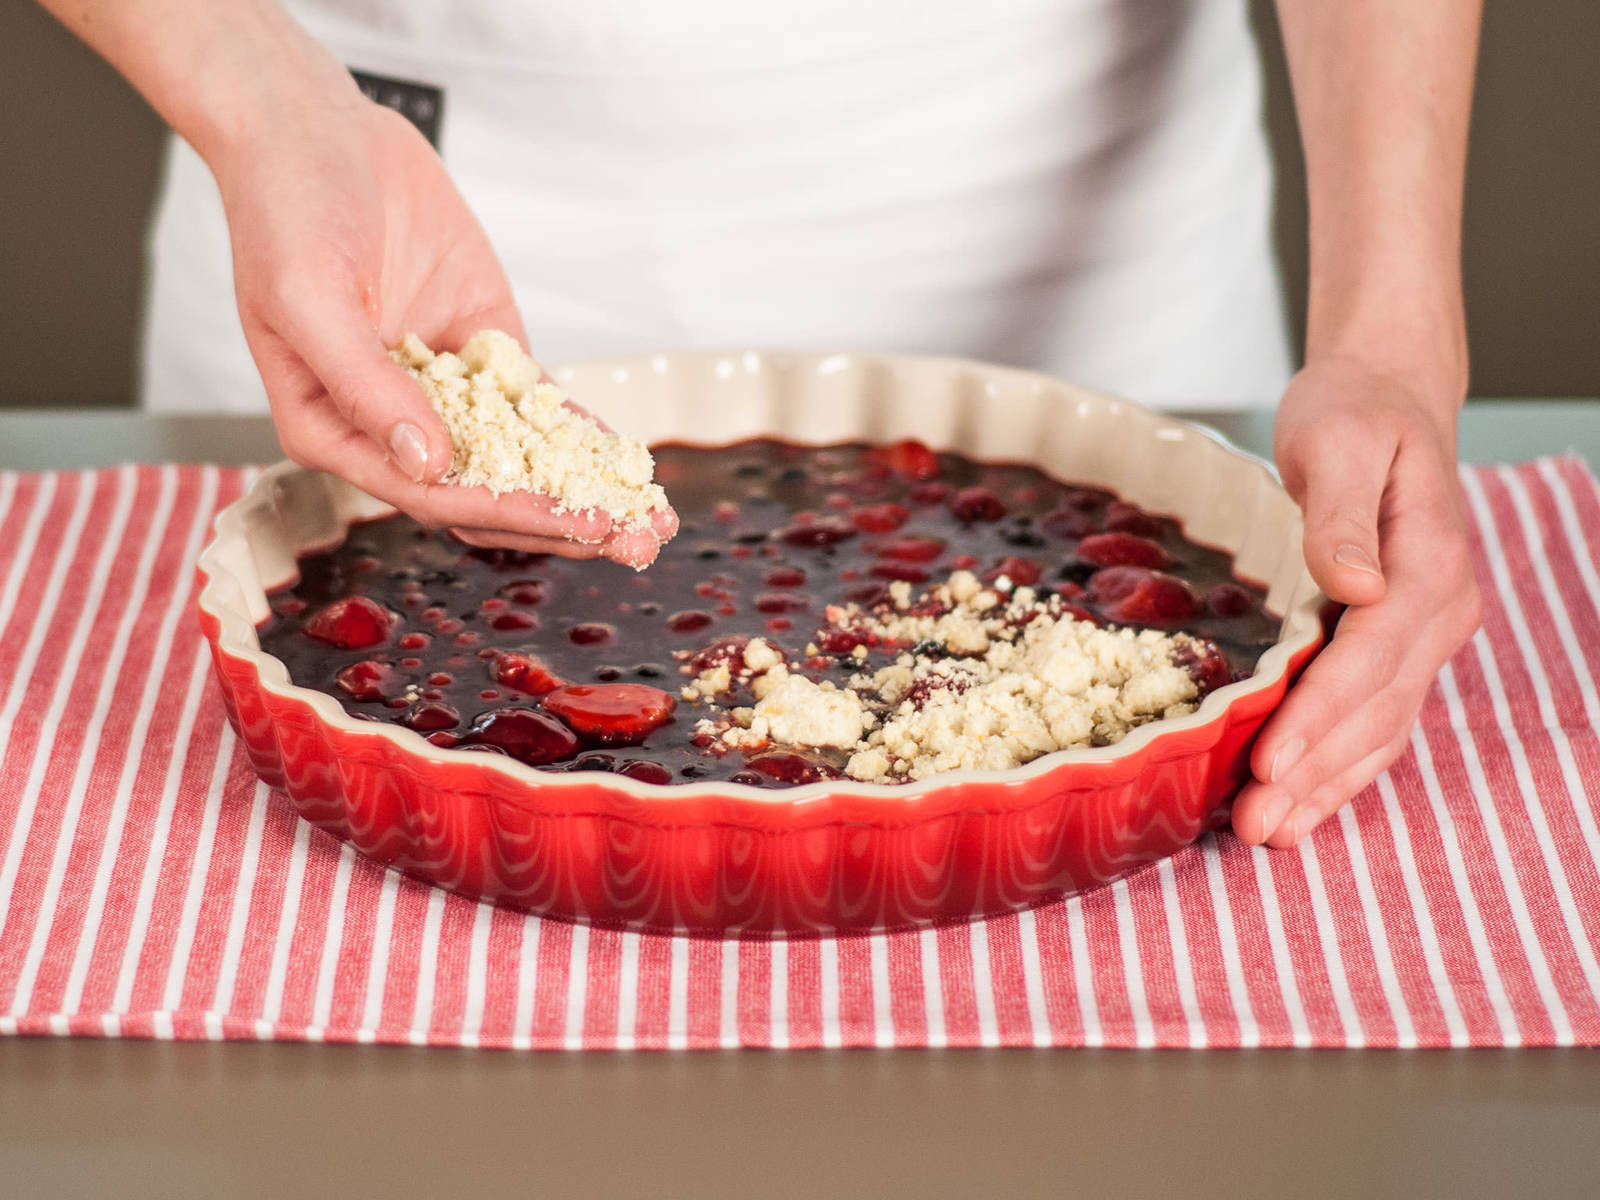 Evenly distribute crumble topping over berries. Bake in a preheated oven at 180°C (350°F) until topping is golden, approx. 23 – 25 min. Enjoy warm with vanilla sauce, whipped cream or ice cream.